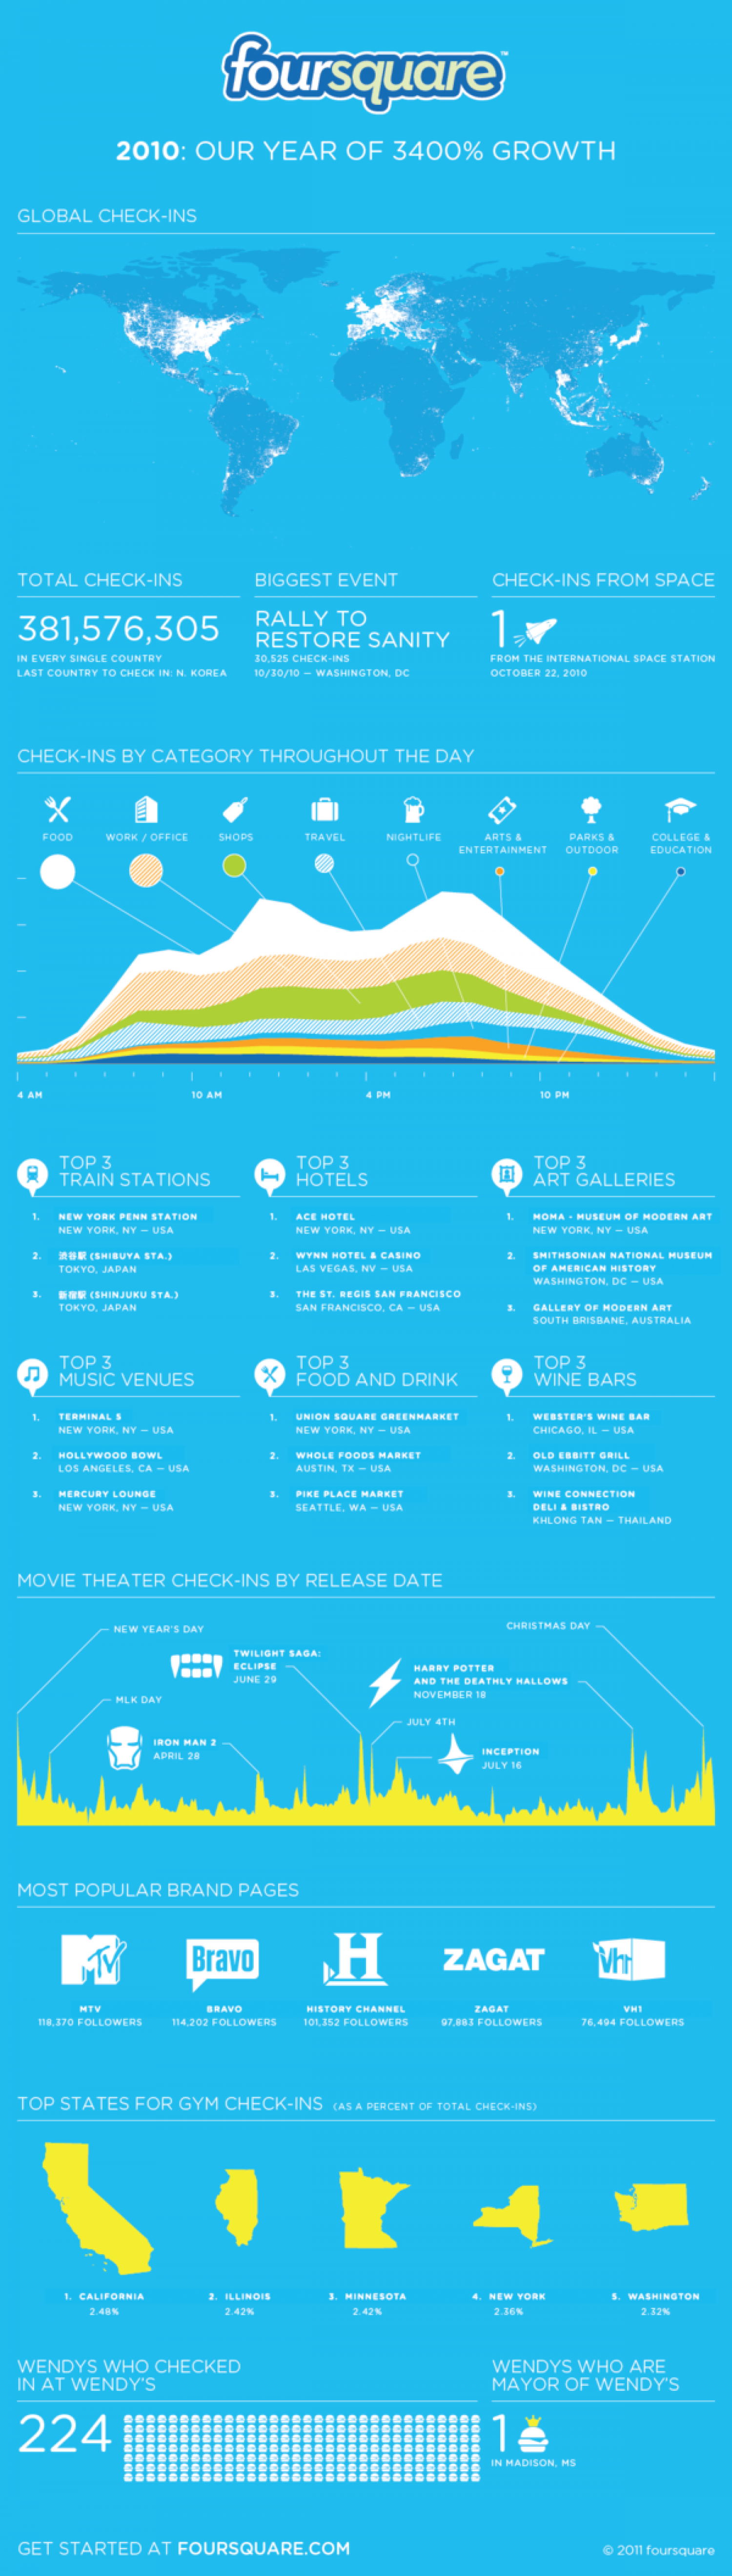 Foursquare says it grew 3,400% in 2010 Infographic